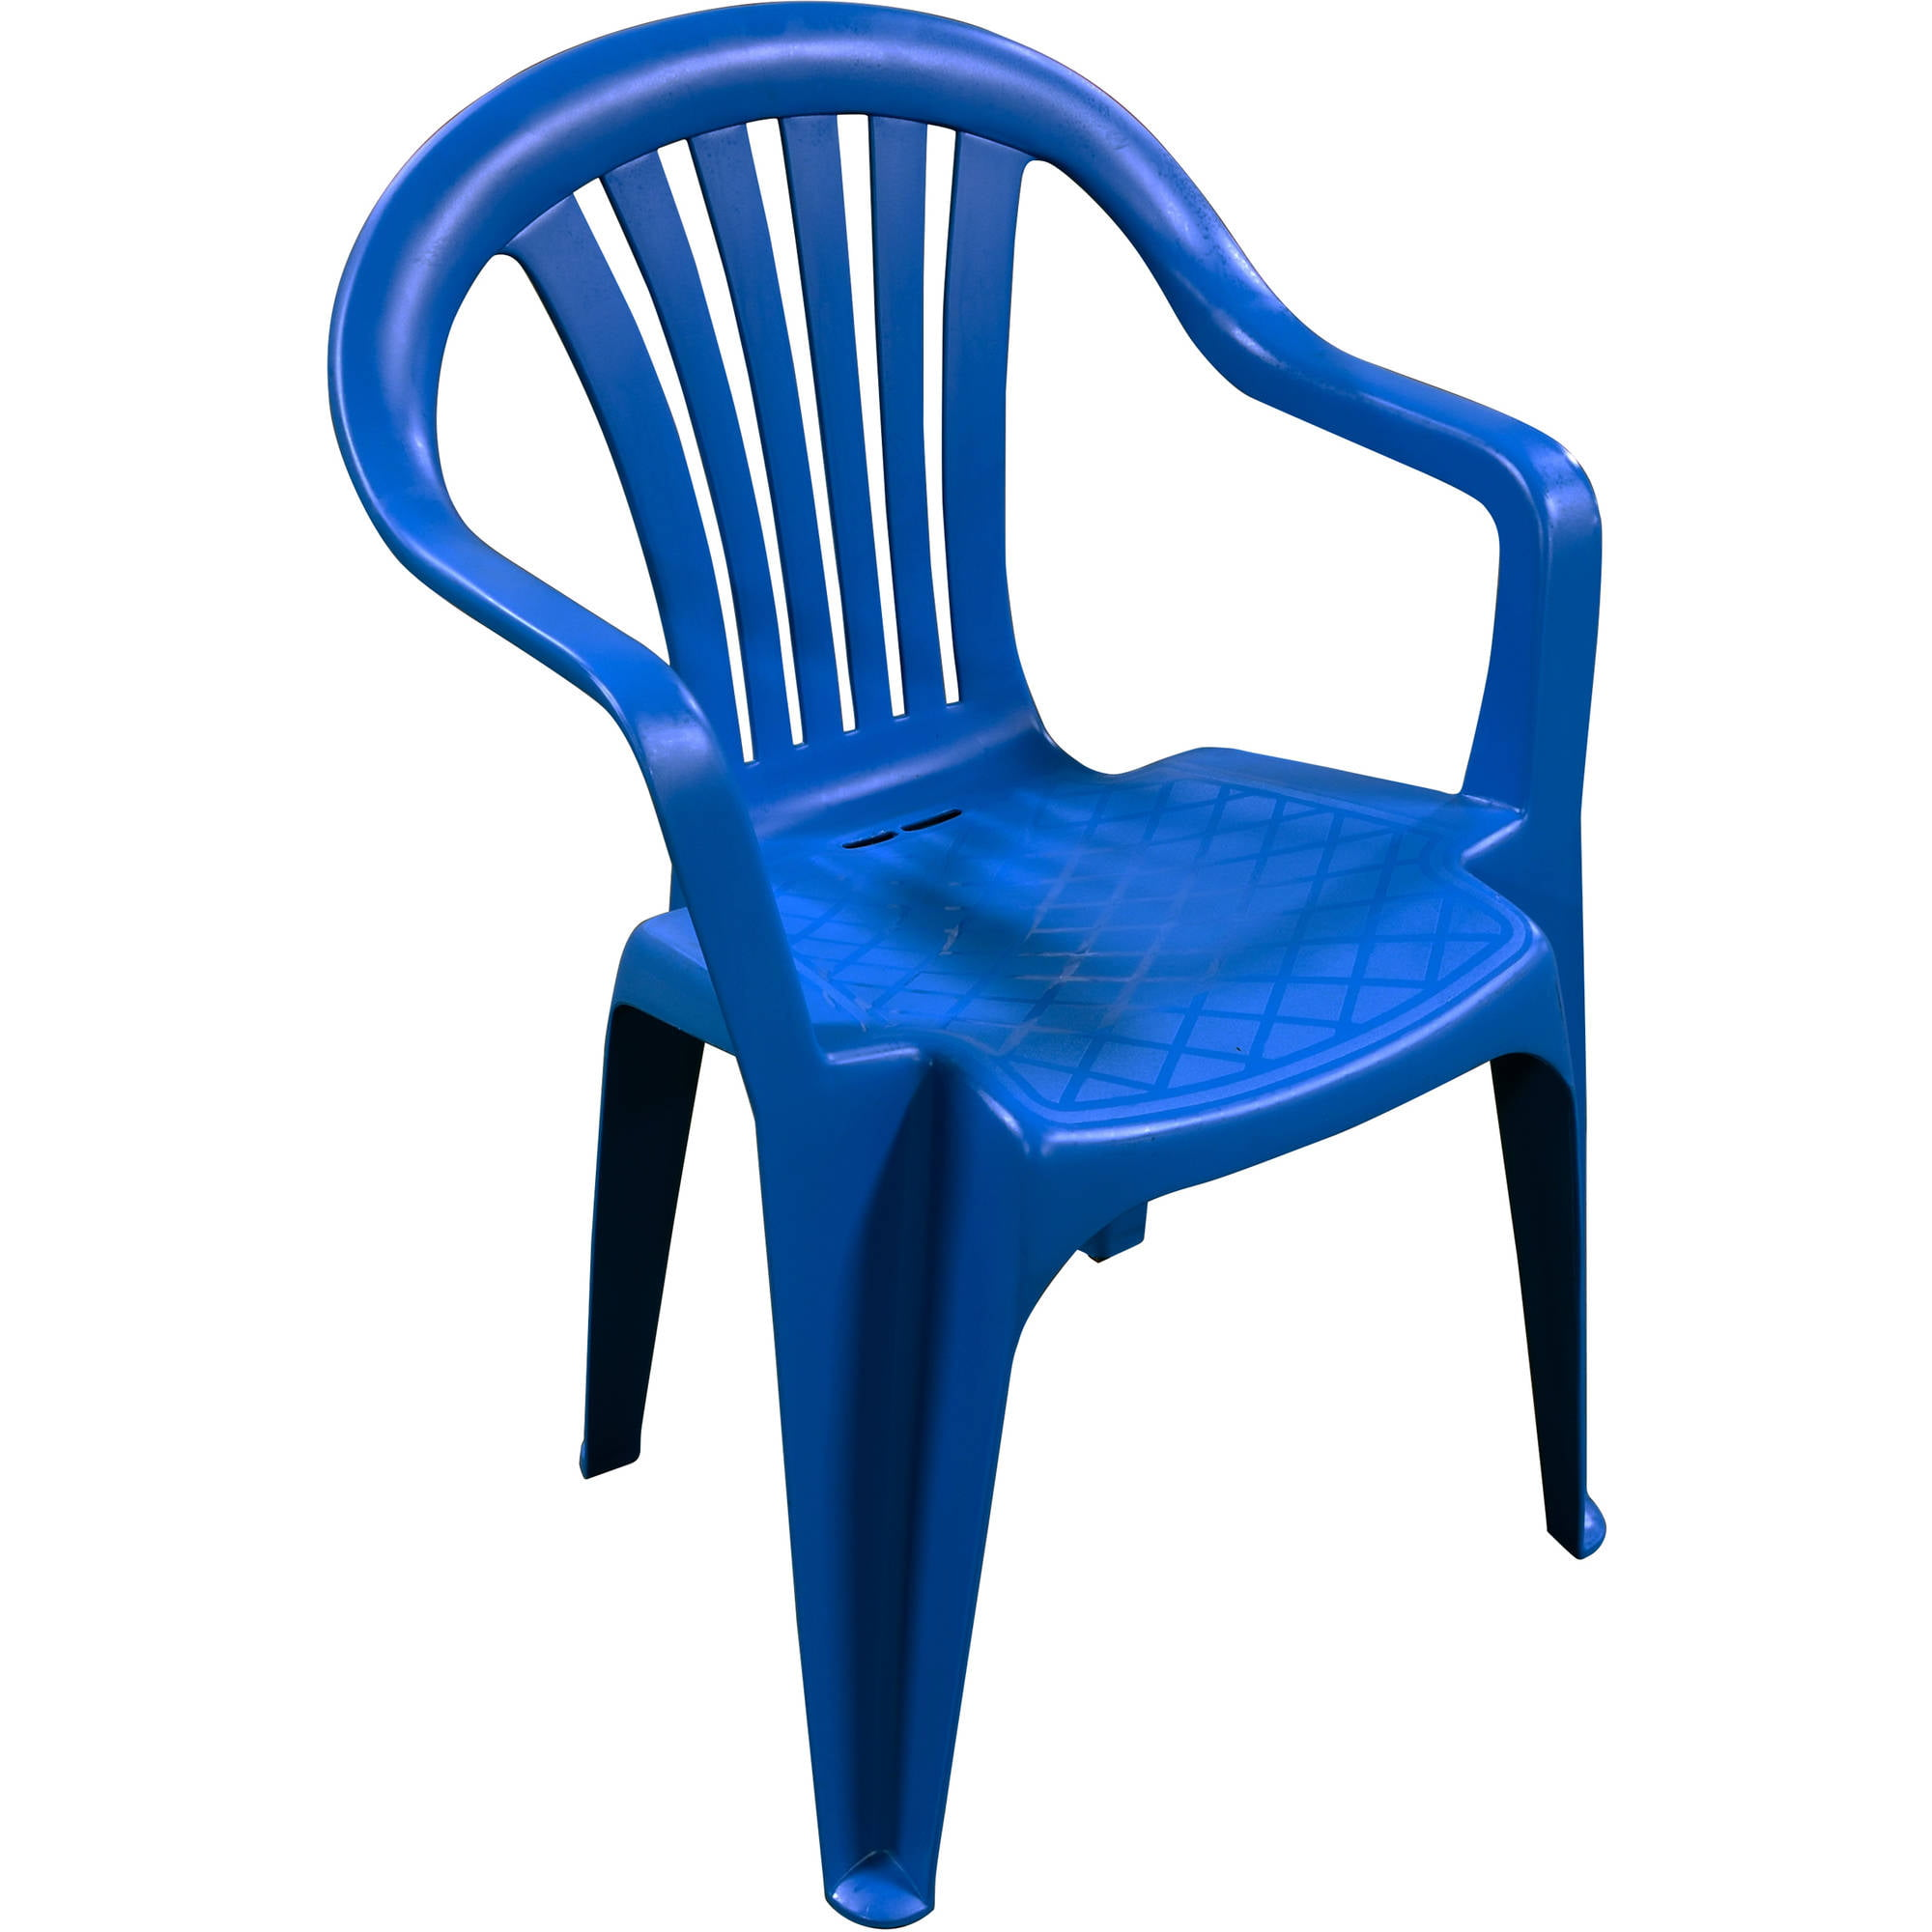 Adams Manufacturing Low Back Chair, Patriotic Blue   Walmart.com